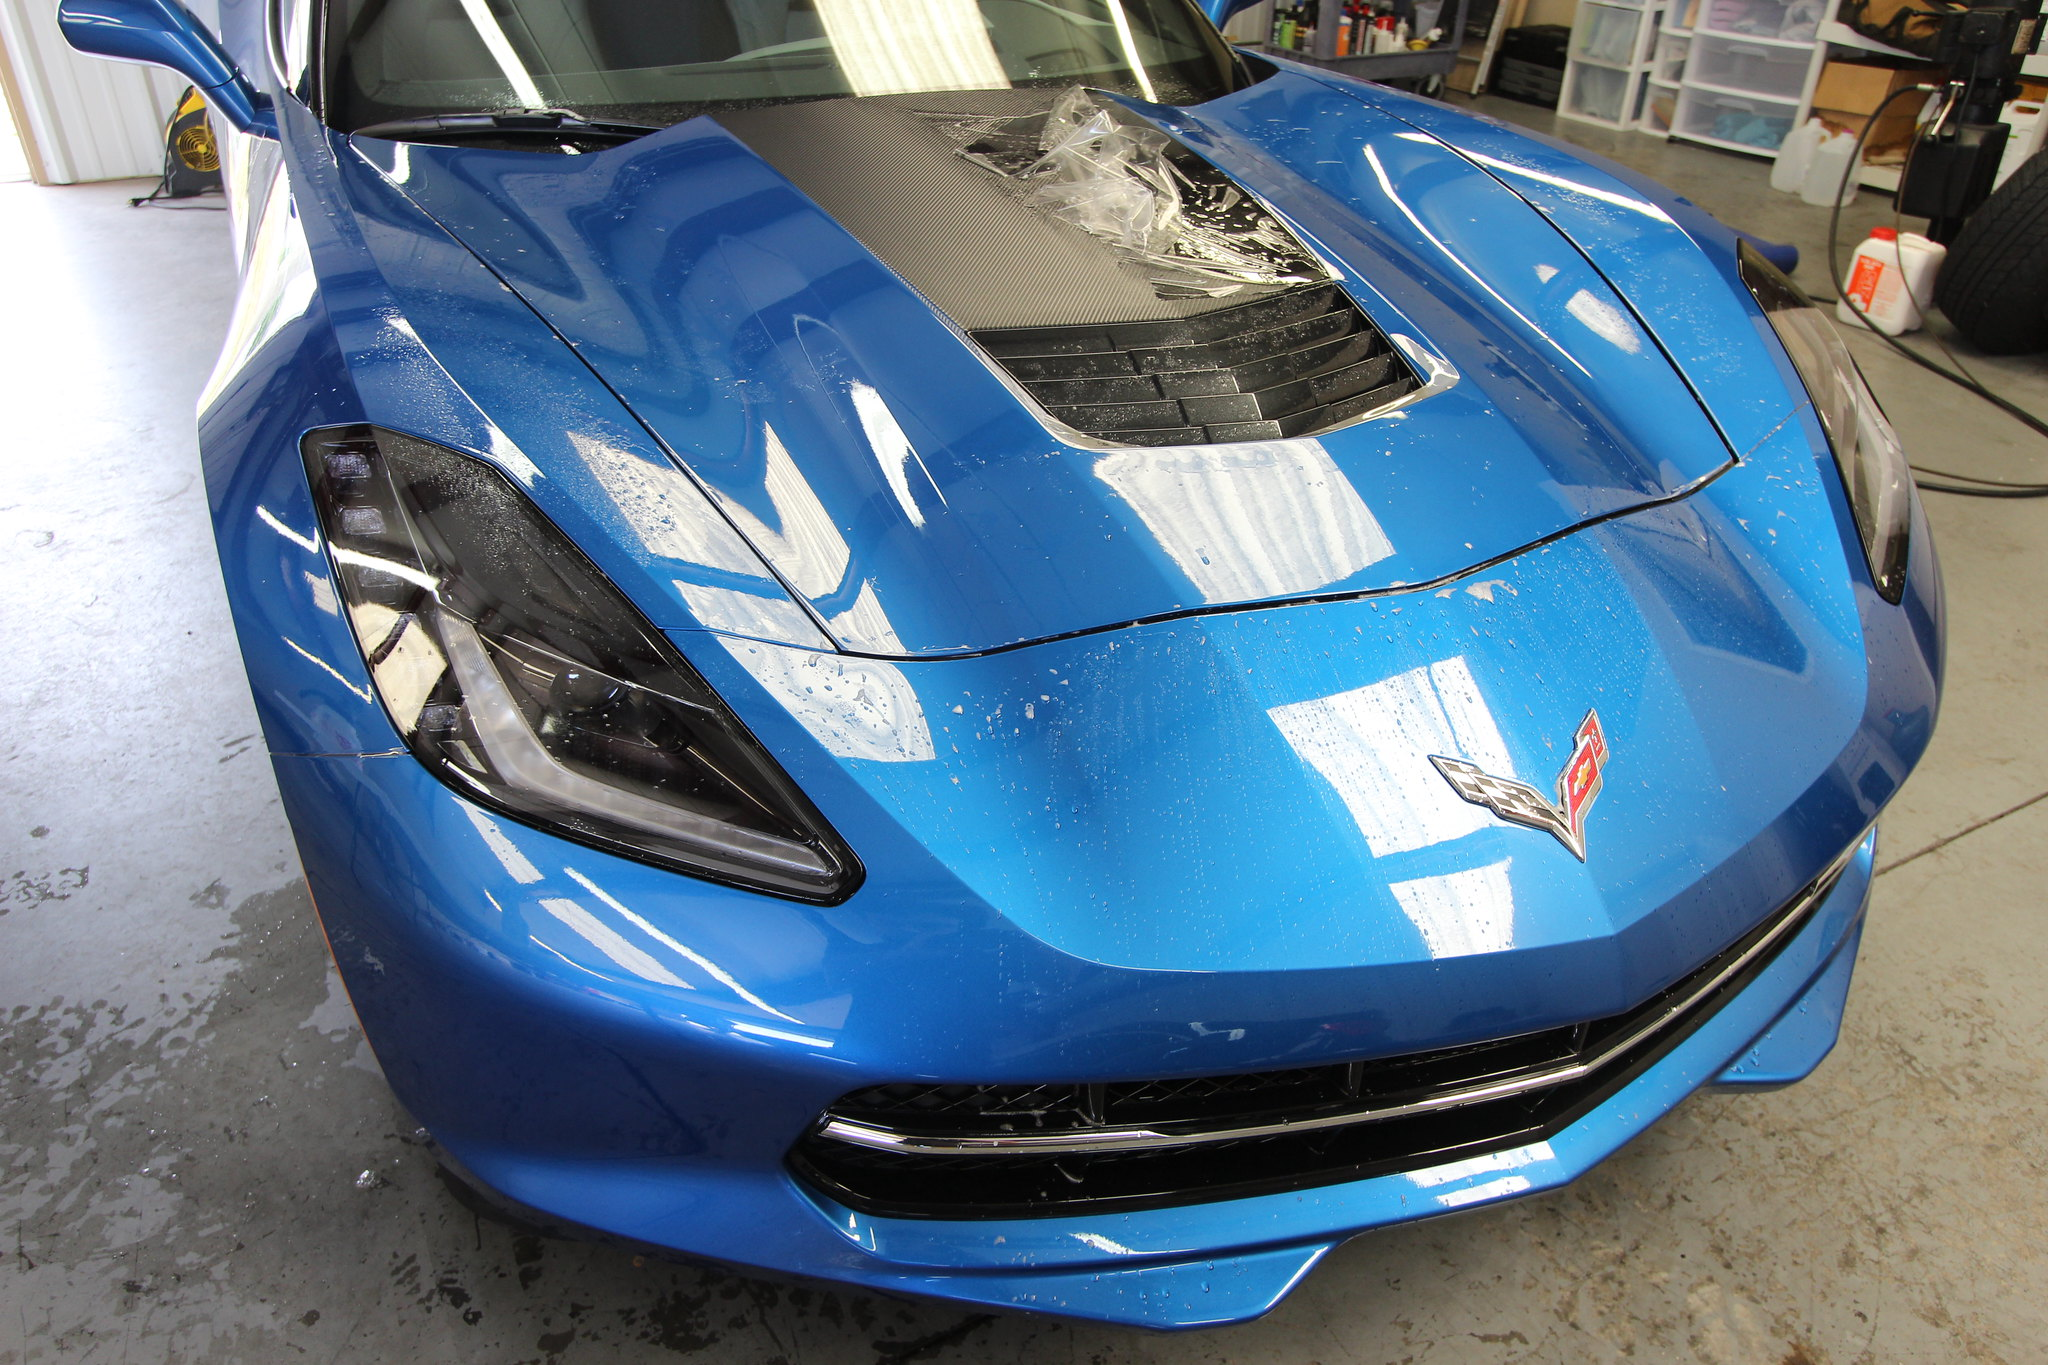 Laguna Blue Corvette Stingray Atlanta